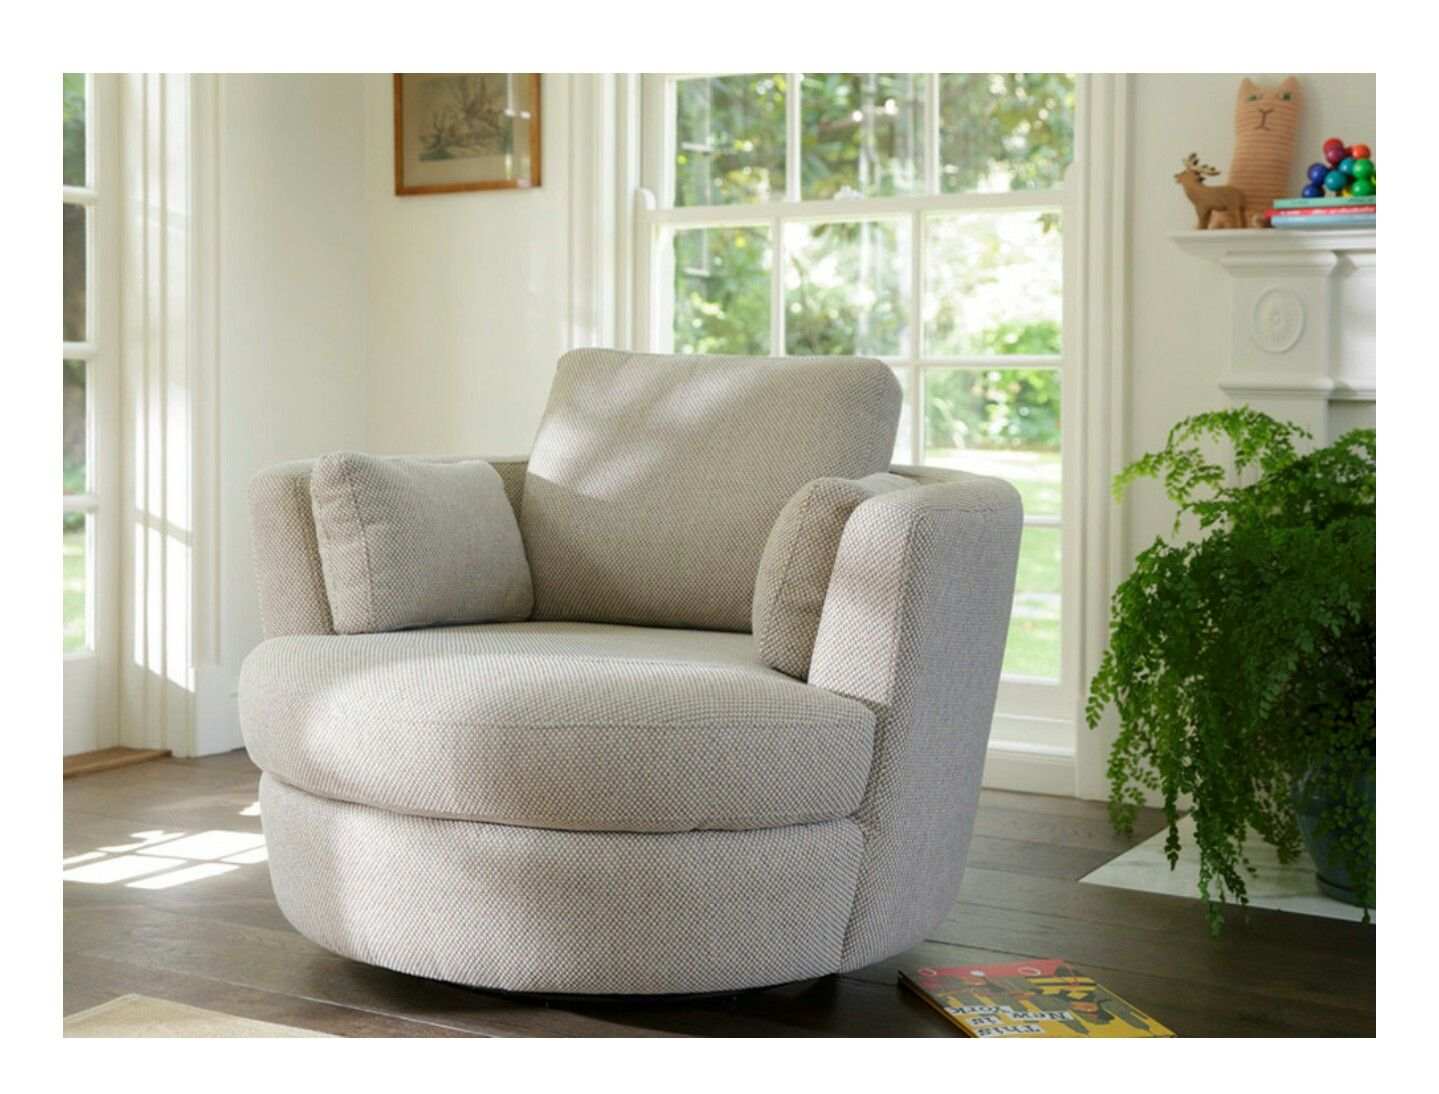 Small Chairs For Bedroom Plush Swivel Chair Nifty Furniture Sofa Furniture Small